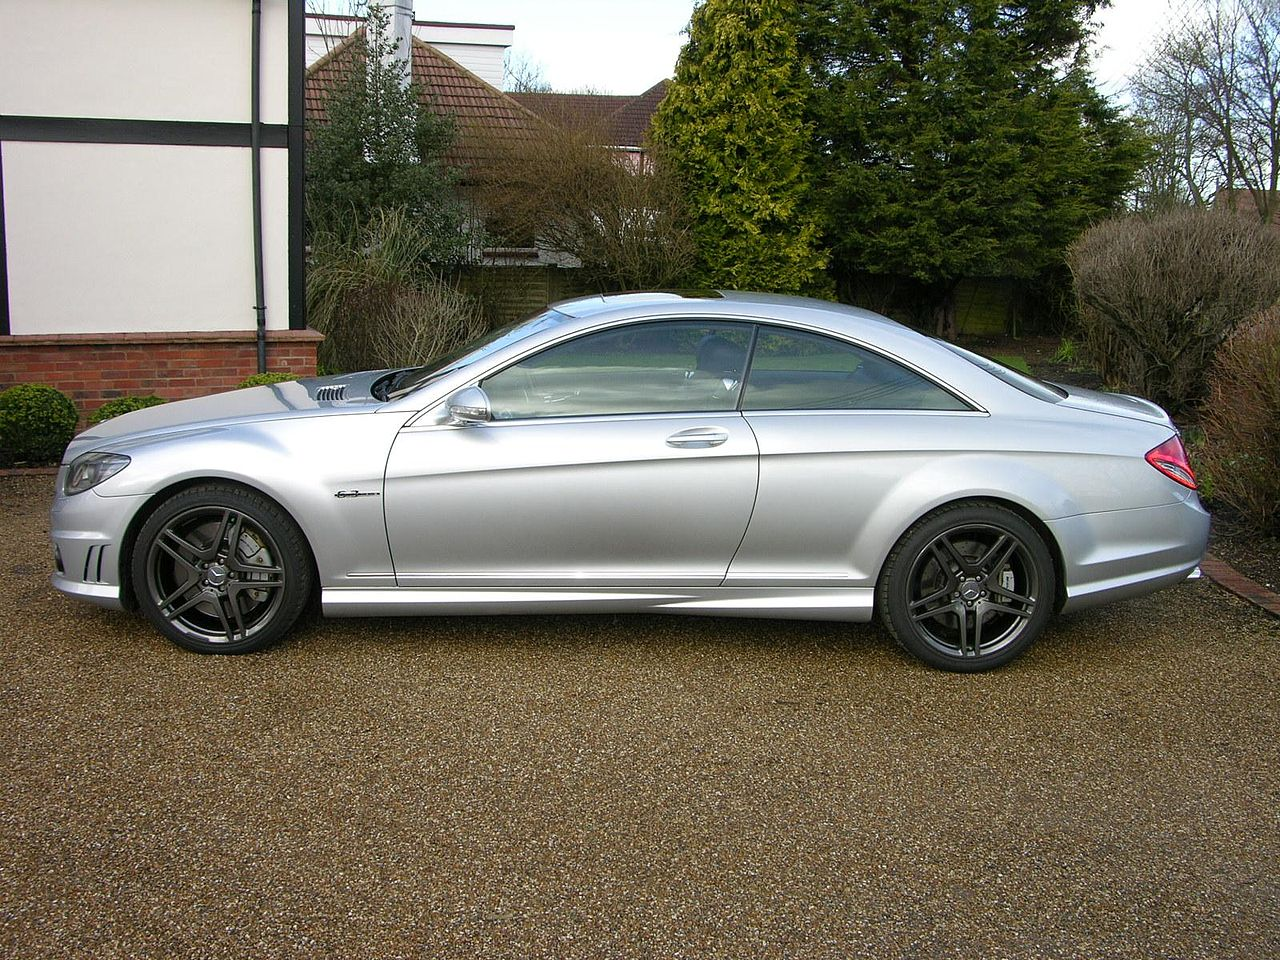 File:2007 Mercedes Benz CL63 AMG - Flickr - The Car Spy (9).jpg